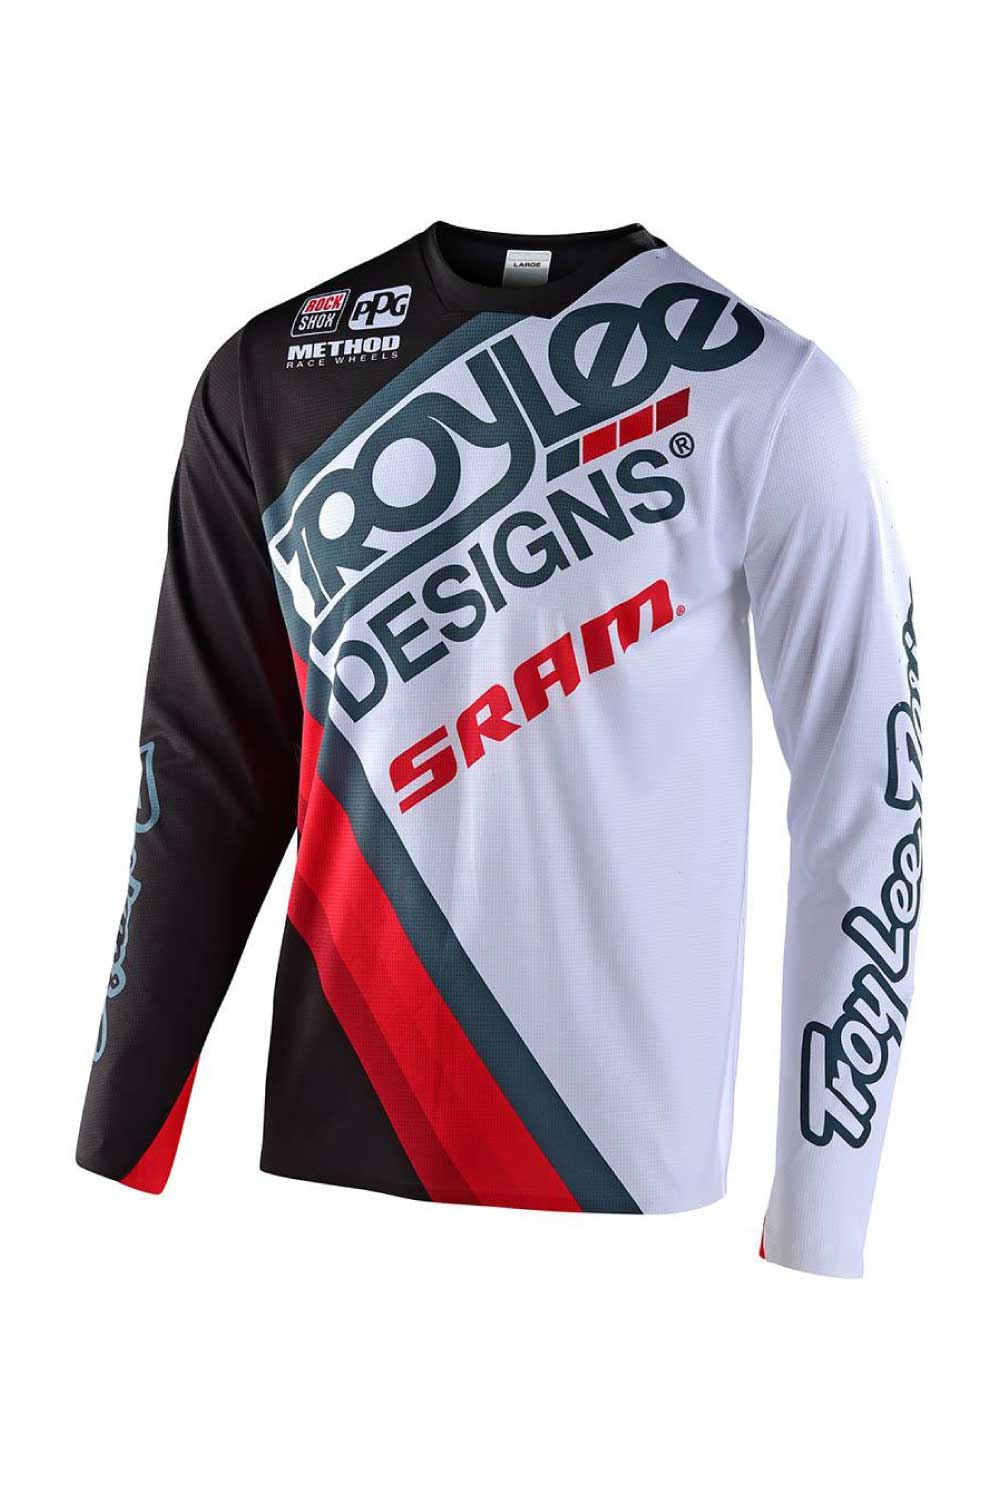 Troy Lee Designs 2020 Sprint Ultra Mountain Bike Jersey